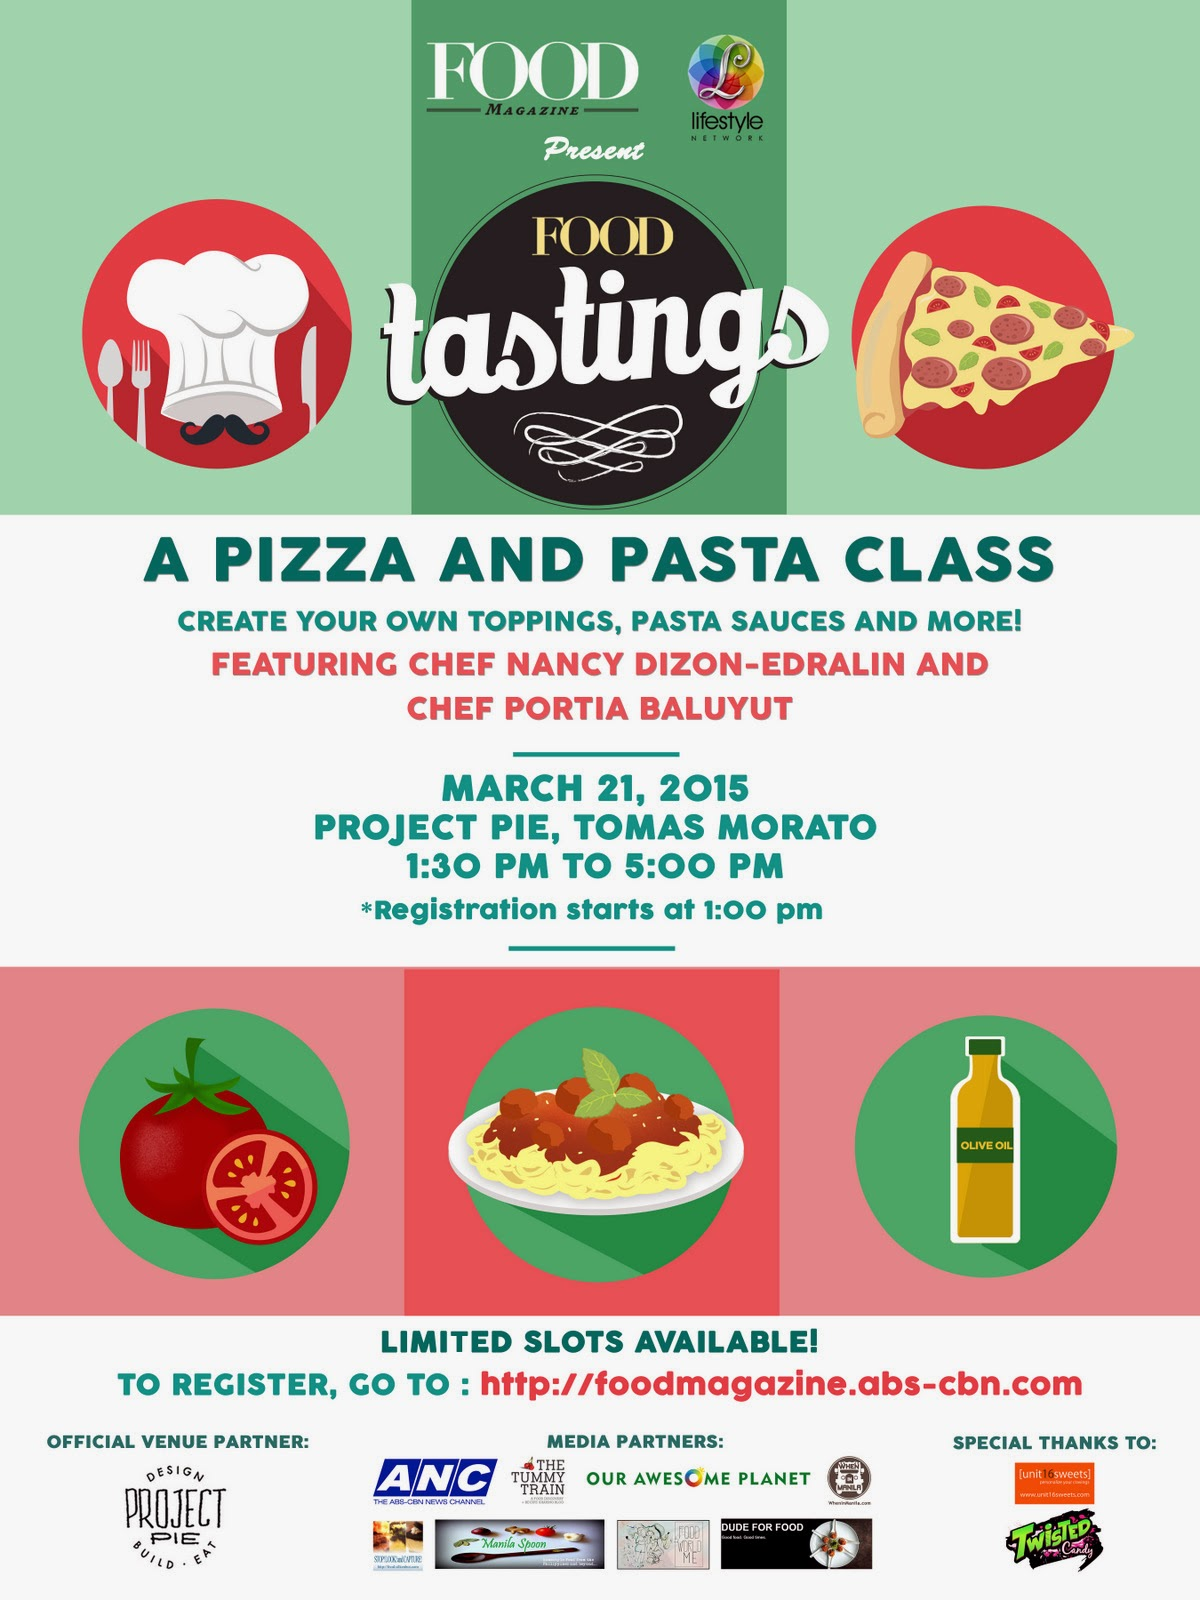 Food Magazine's Food Tastings Series (Free Pizza and Pasta Class)